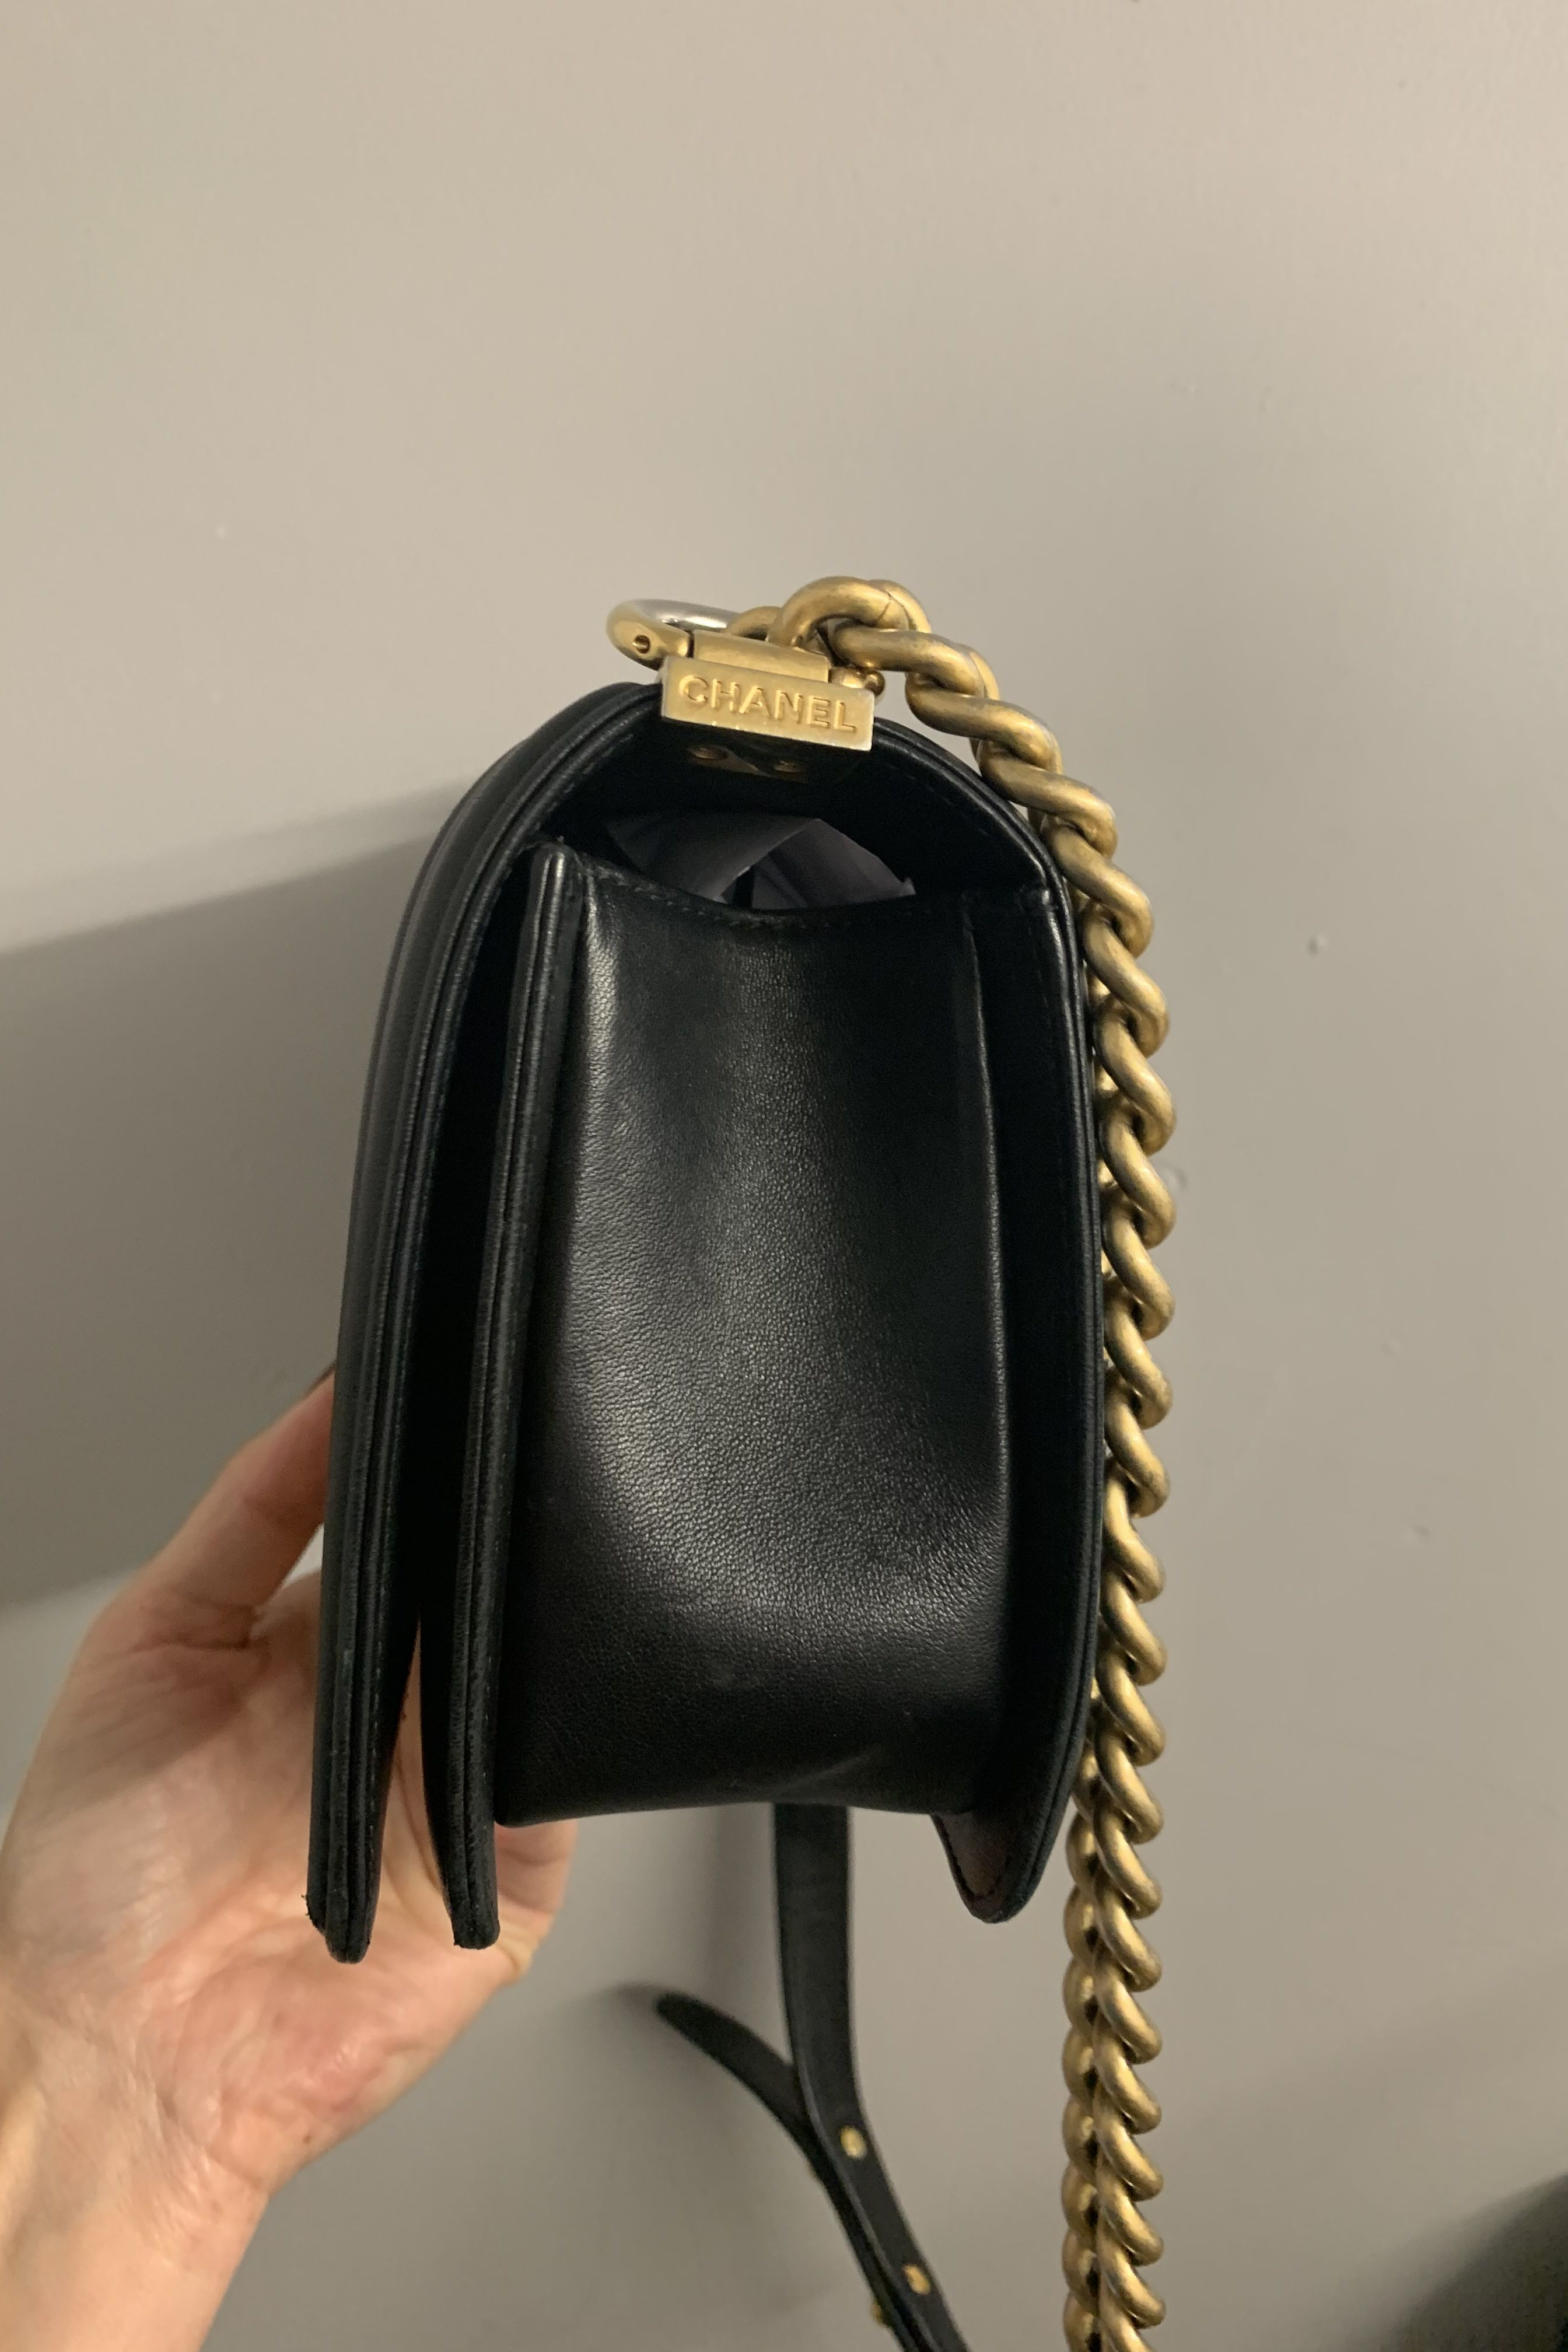 Chanel Boy handbag  3 Preview Images